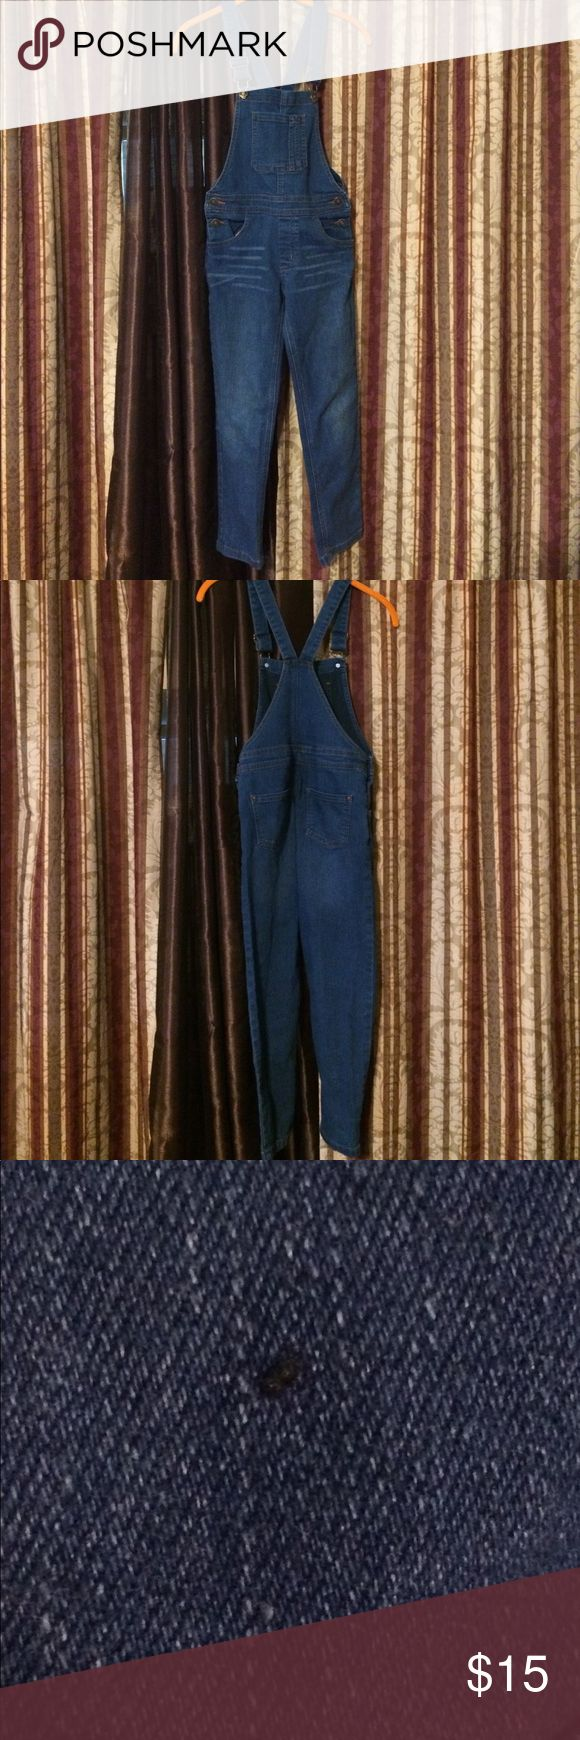 FabKids Overalls Indigo Girls size 10 youth FabKids overalls in size 10 youth girls. They are in great used shape, with minor spots and discolorations (see photos). FabKids Bottoms Jeans